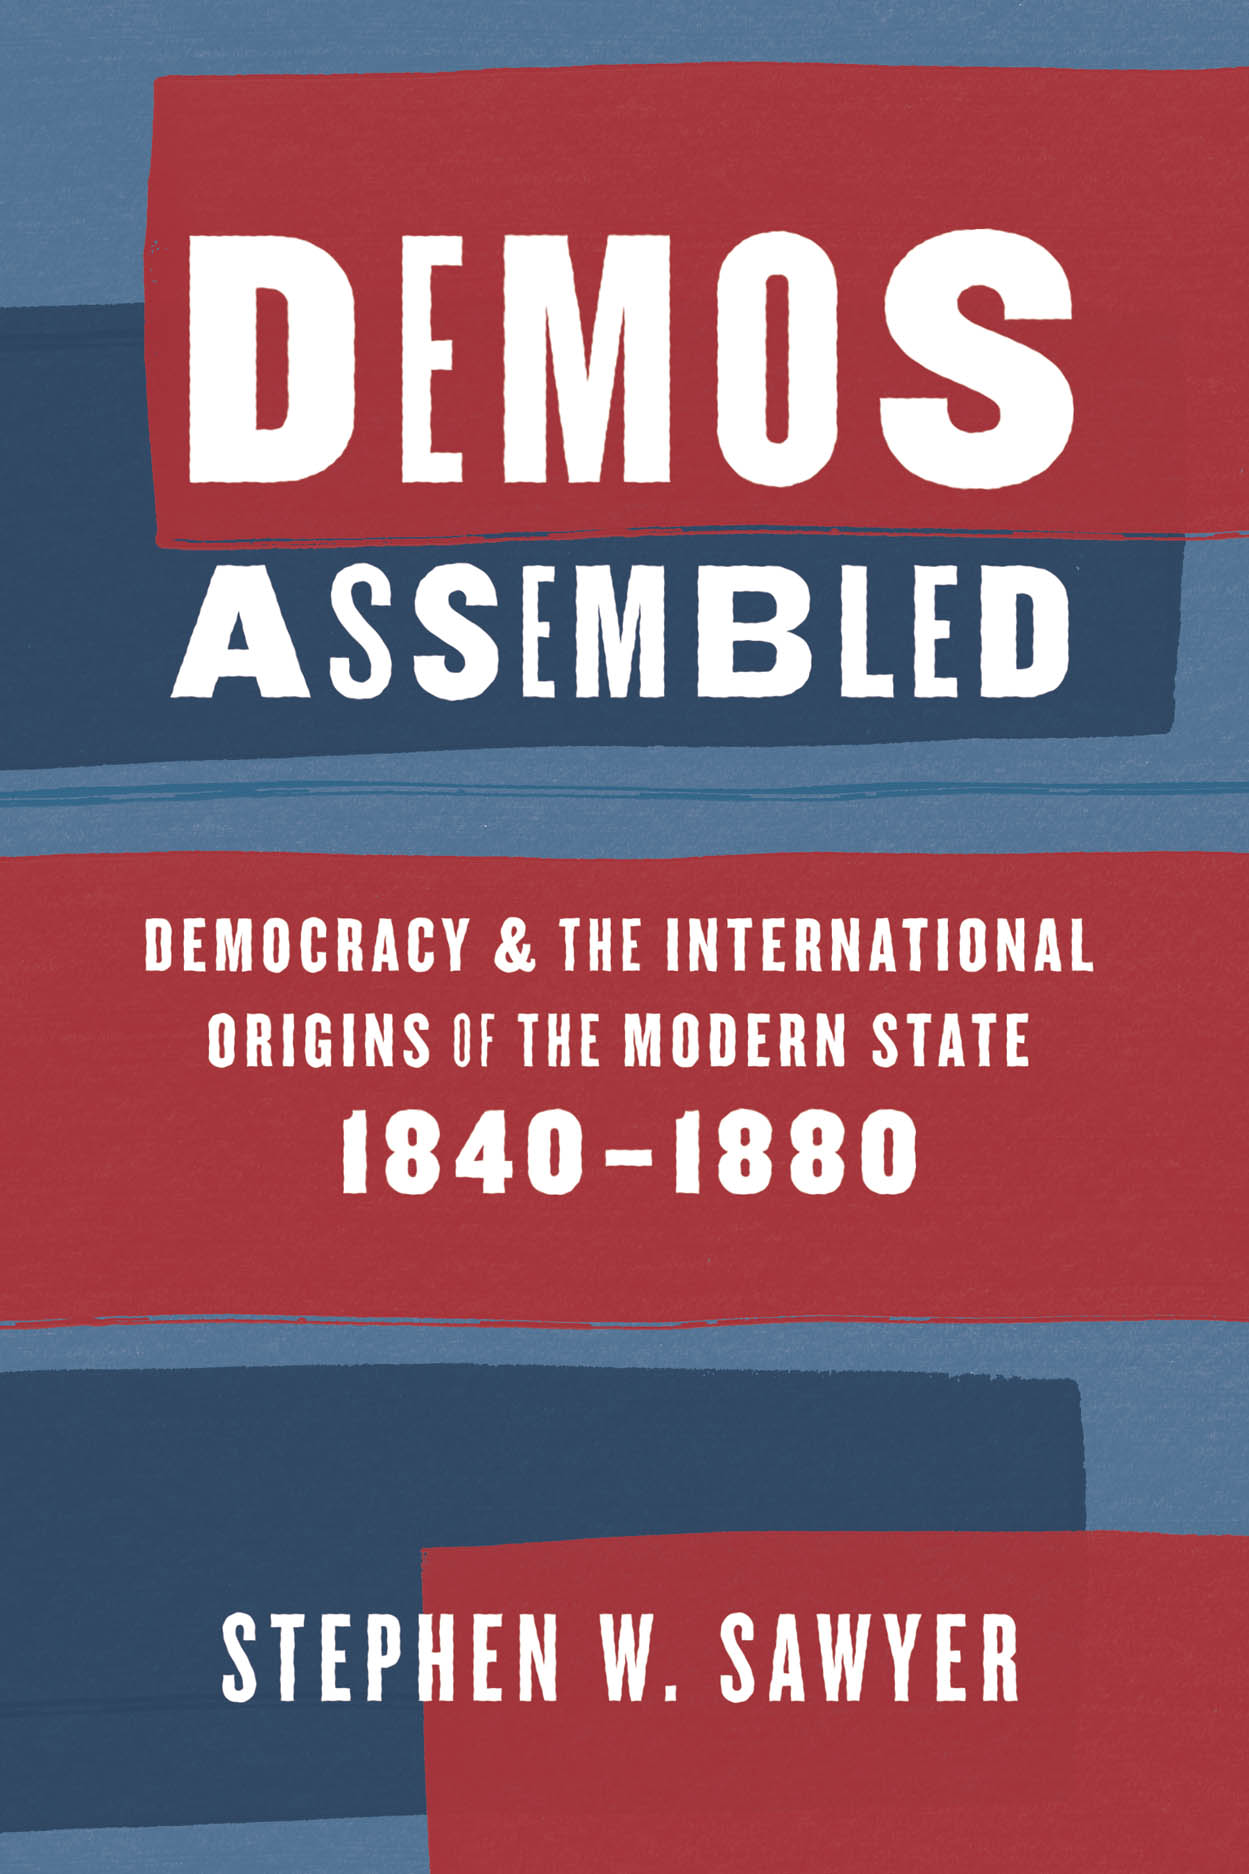 Demos Assembled: Democracy and the International Origins of the Modern State, 1840–1880